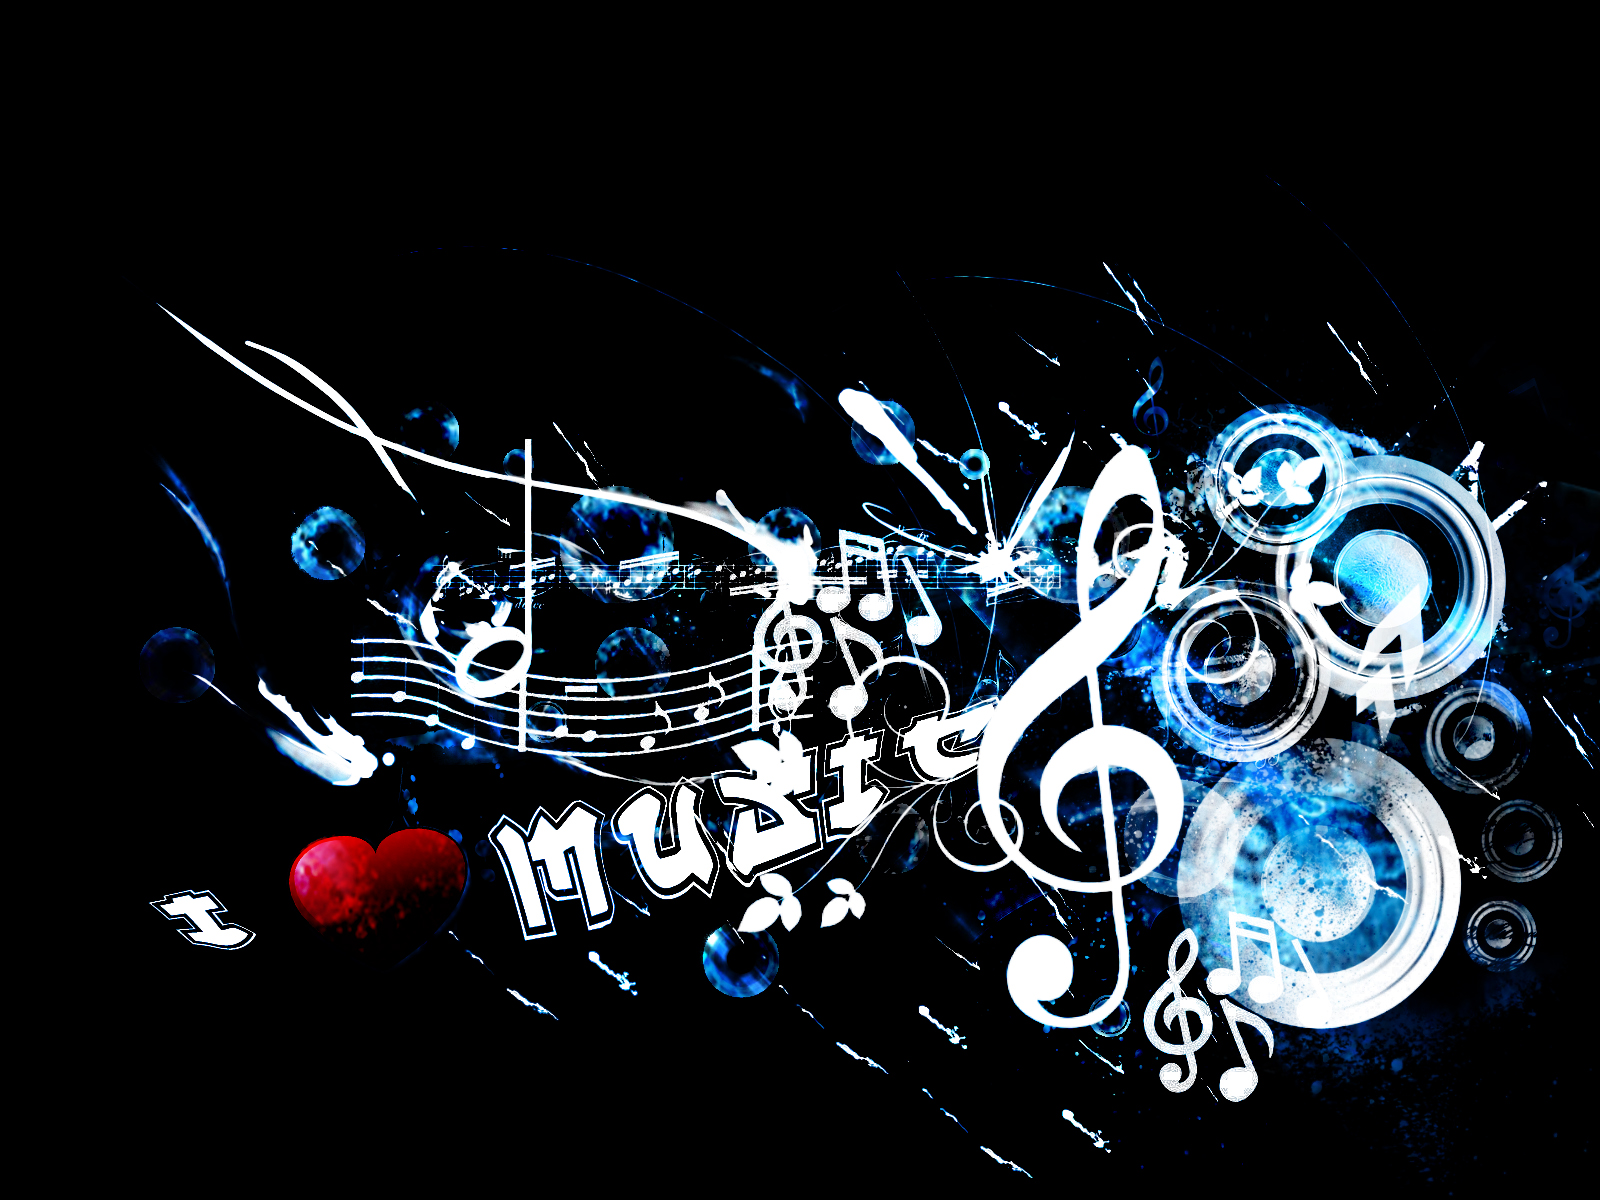 Free download Music Wallpapers Music Hd Wallpapers Hd Music